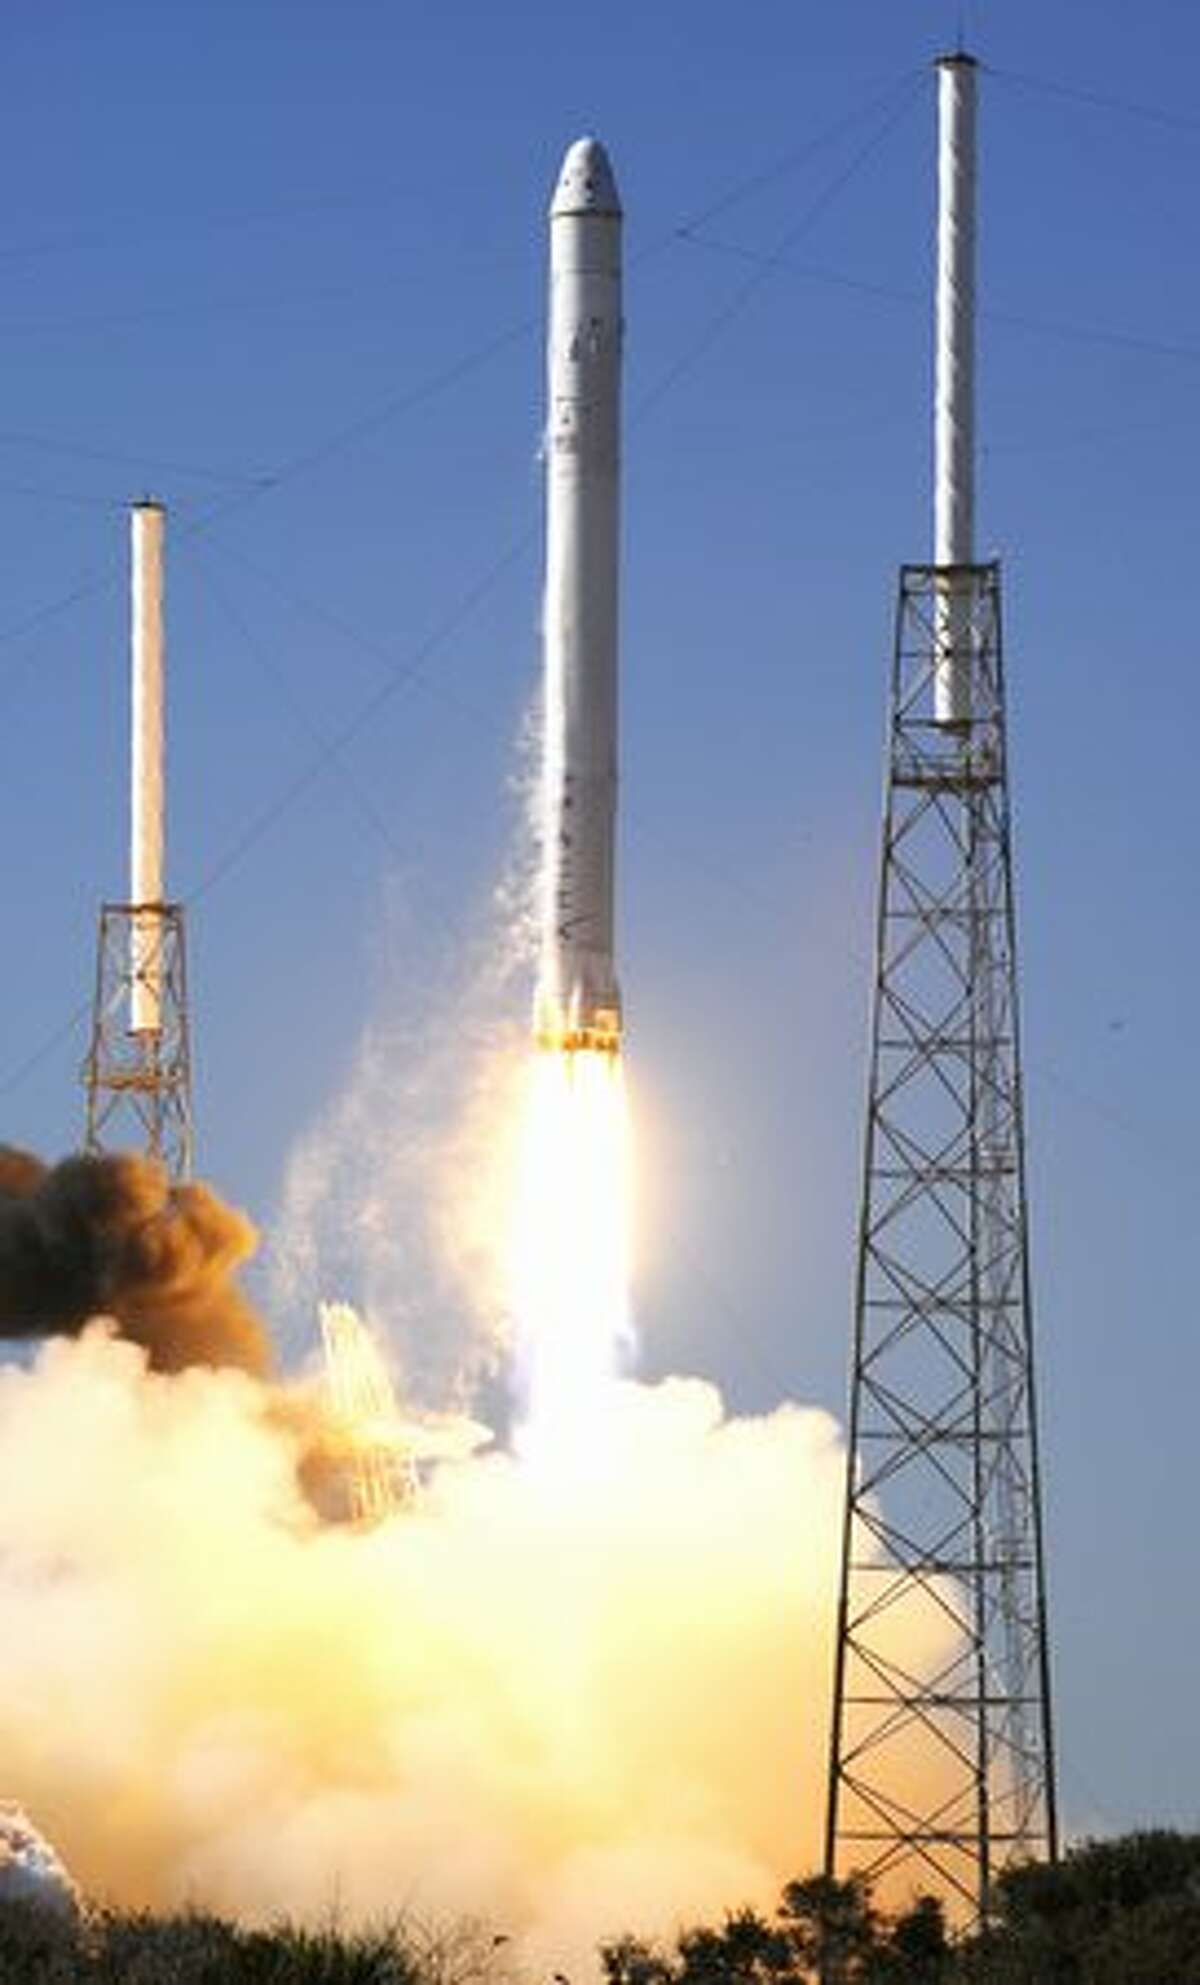 SpaceX's Falcon 9 rocket lifts off from launch pad 40 at Cape Canaveral, Fla.